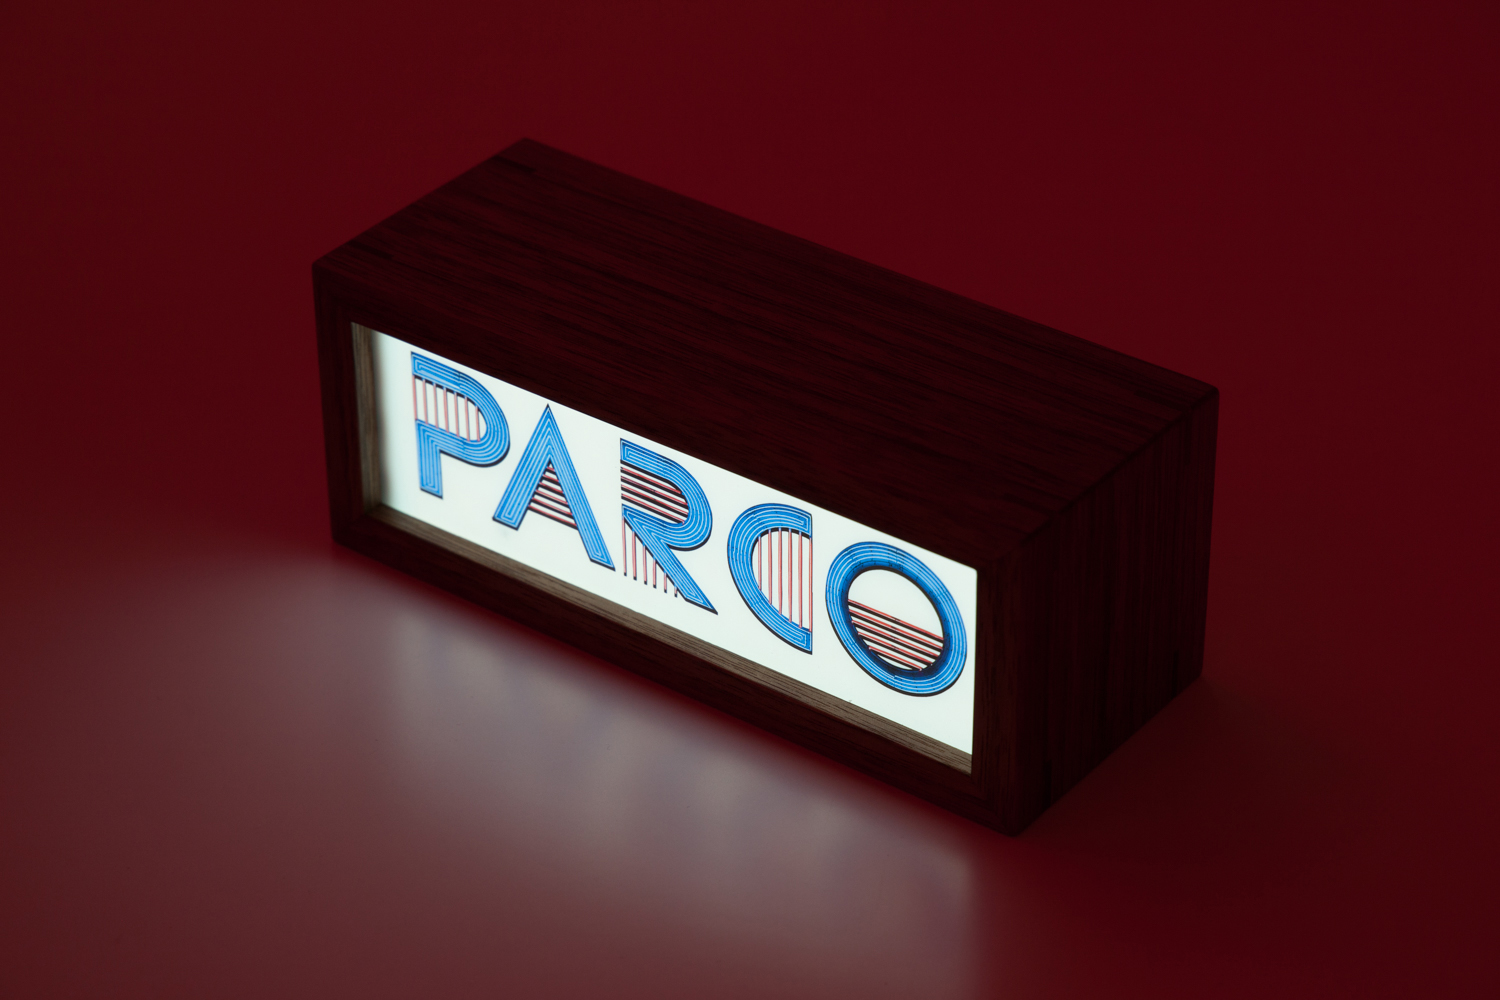 PARCO (Light box)